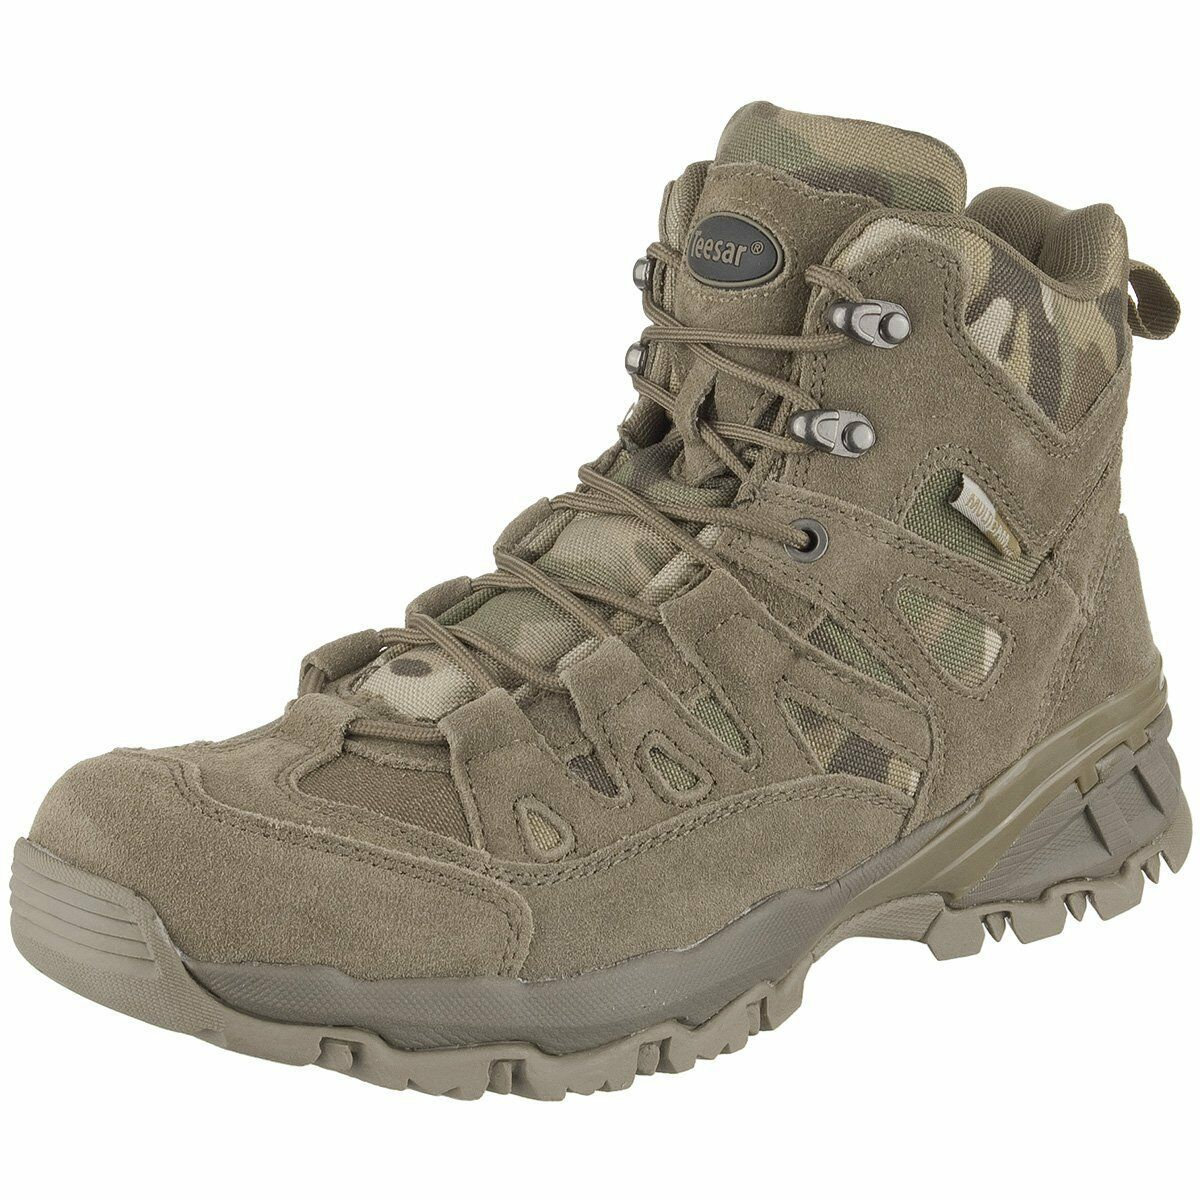 MULTICAM US TACTICAL Stiefel ARMY OUTDOOR STIEFEL Squad 5 inch Gr. 44